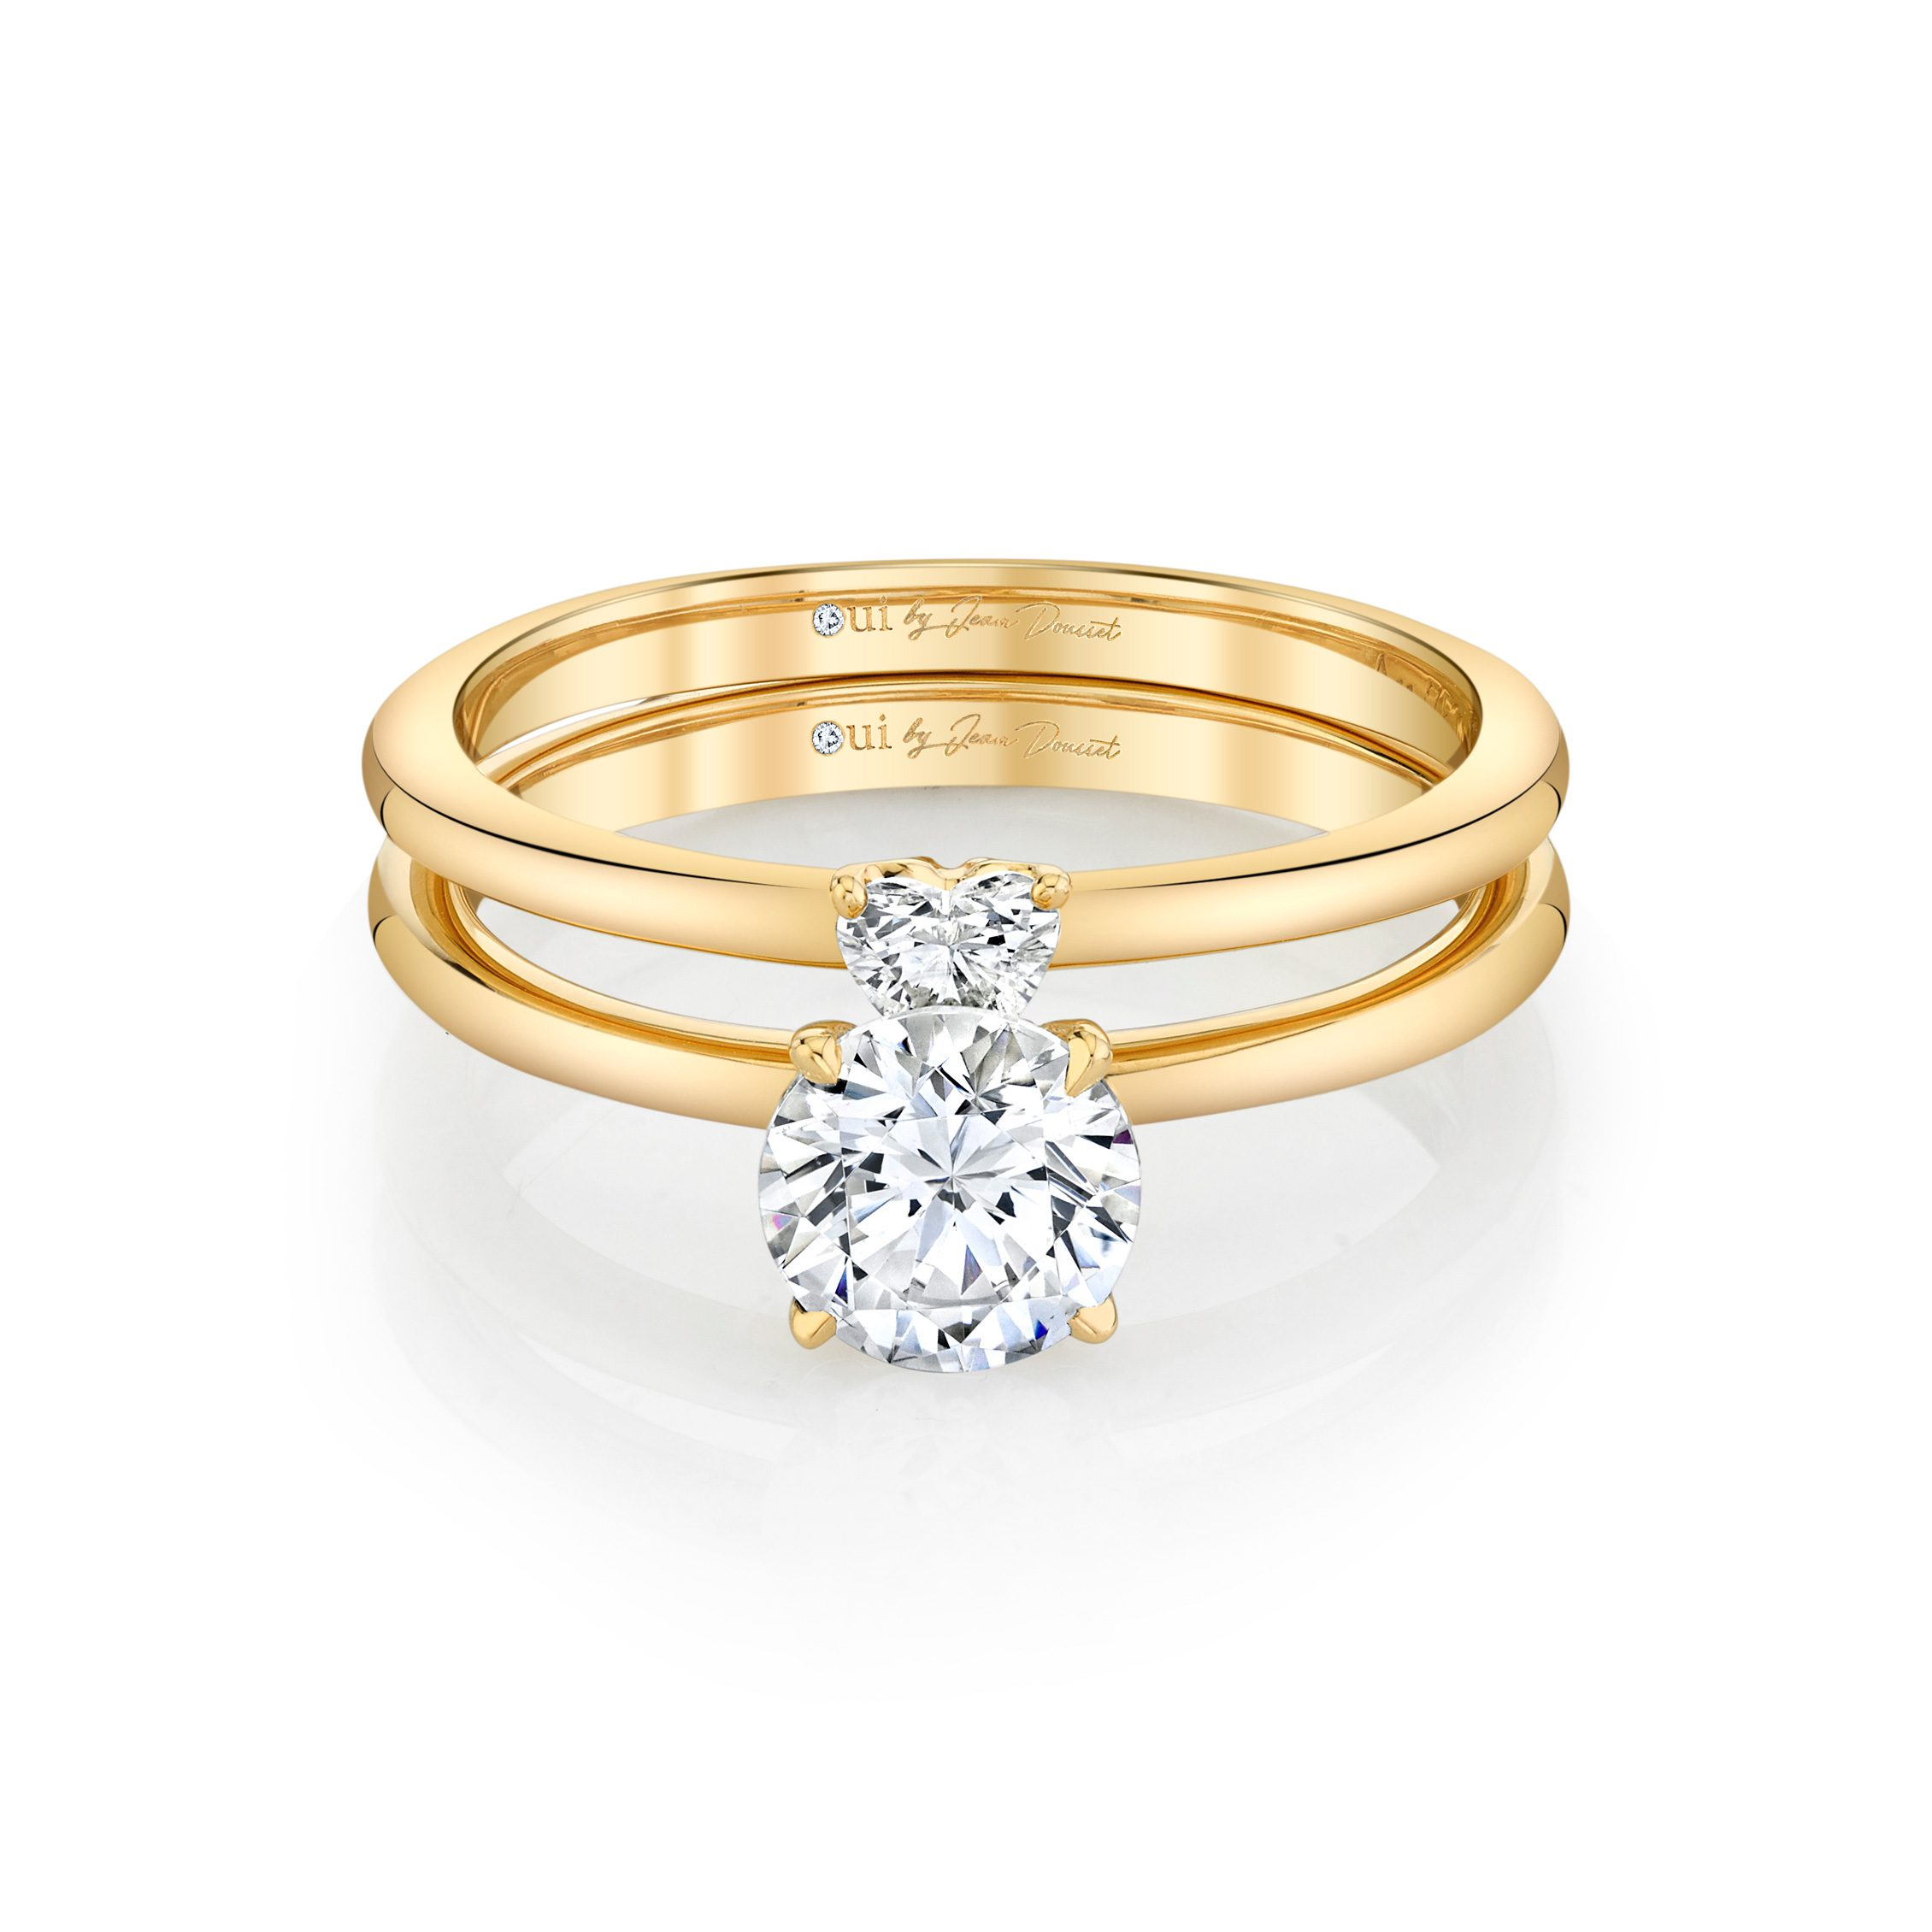 Perfect Duo Interlocking Round Brilliant Solitaire Engagement Ring & Heart Diamond Wedding Band Set 18k Yellow Gold Front View by Oui by Jean Dousset